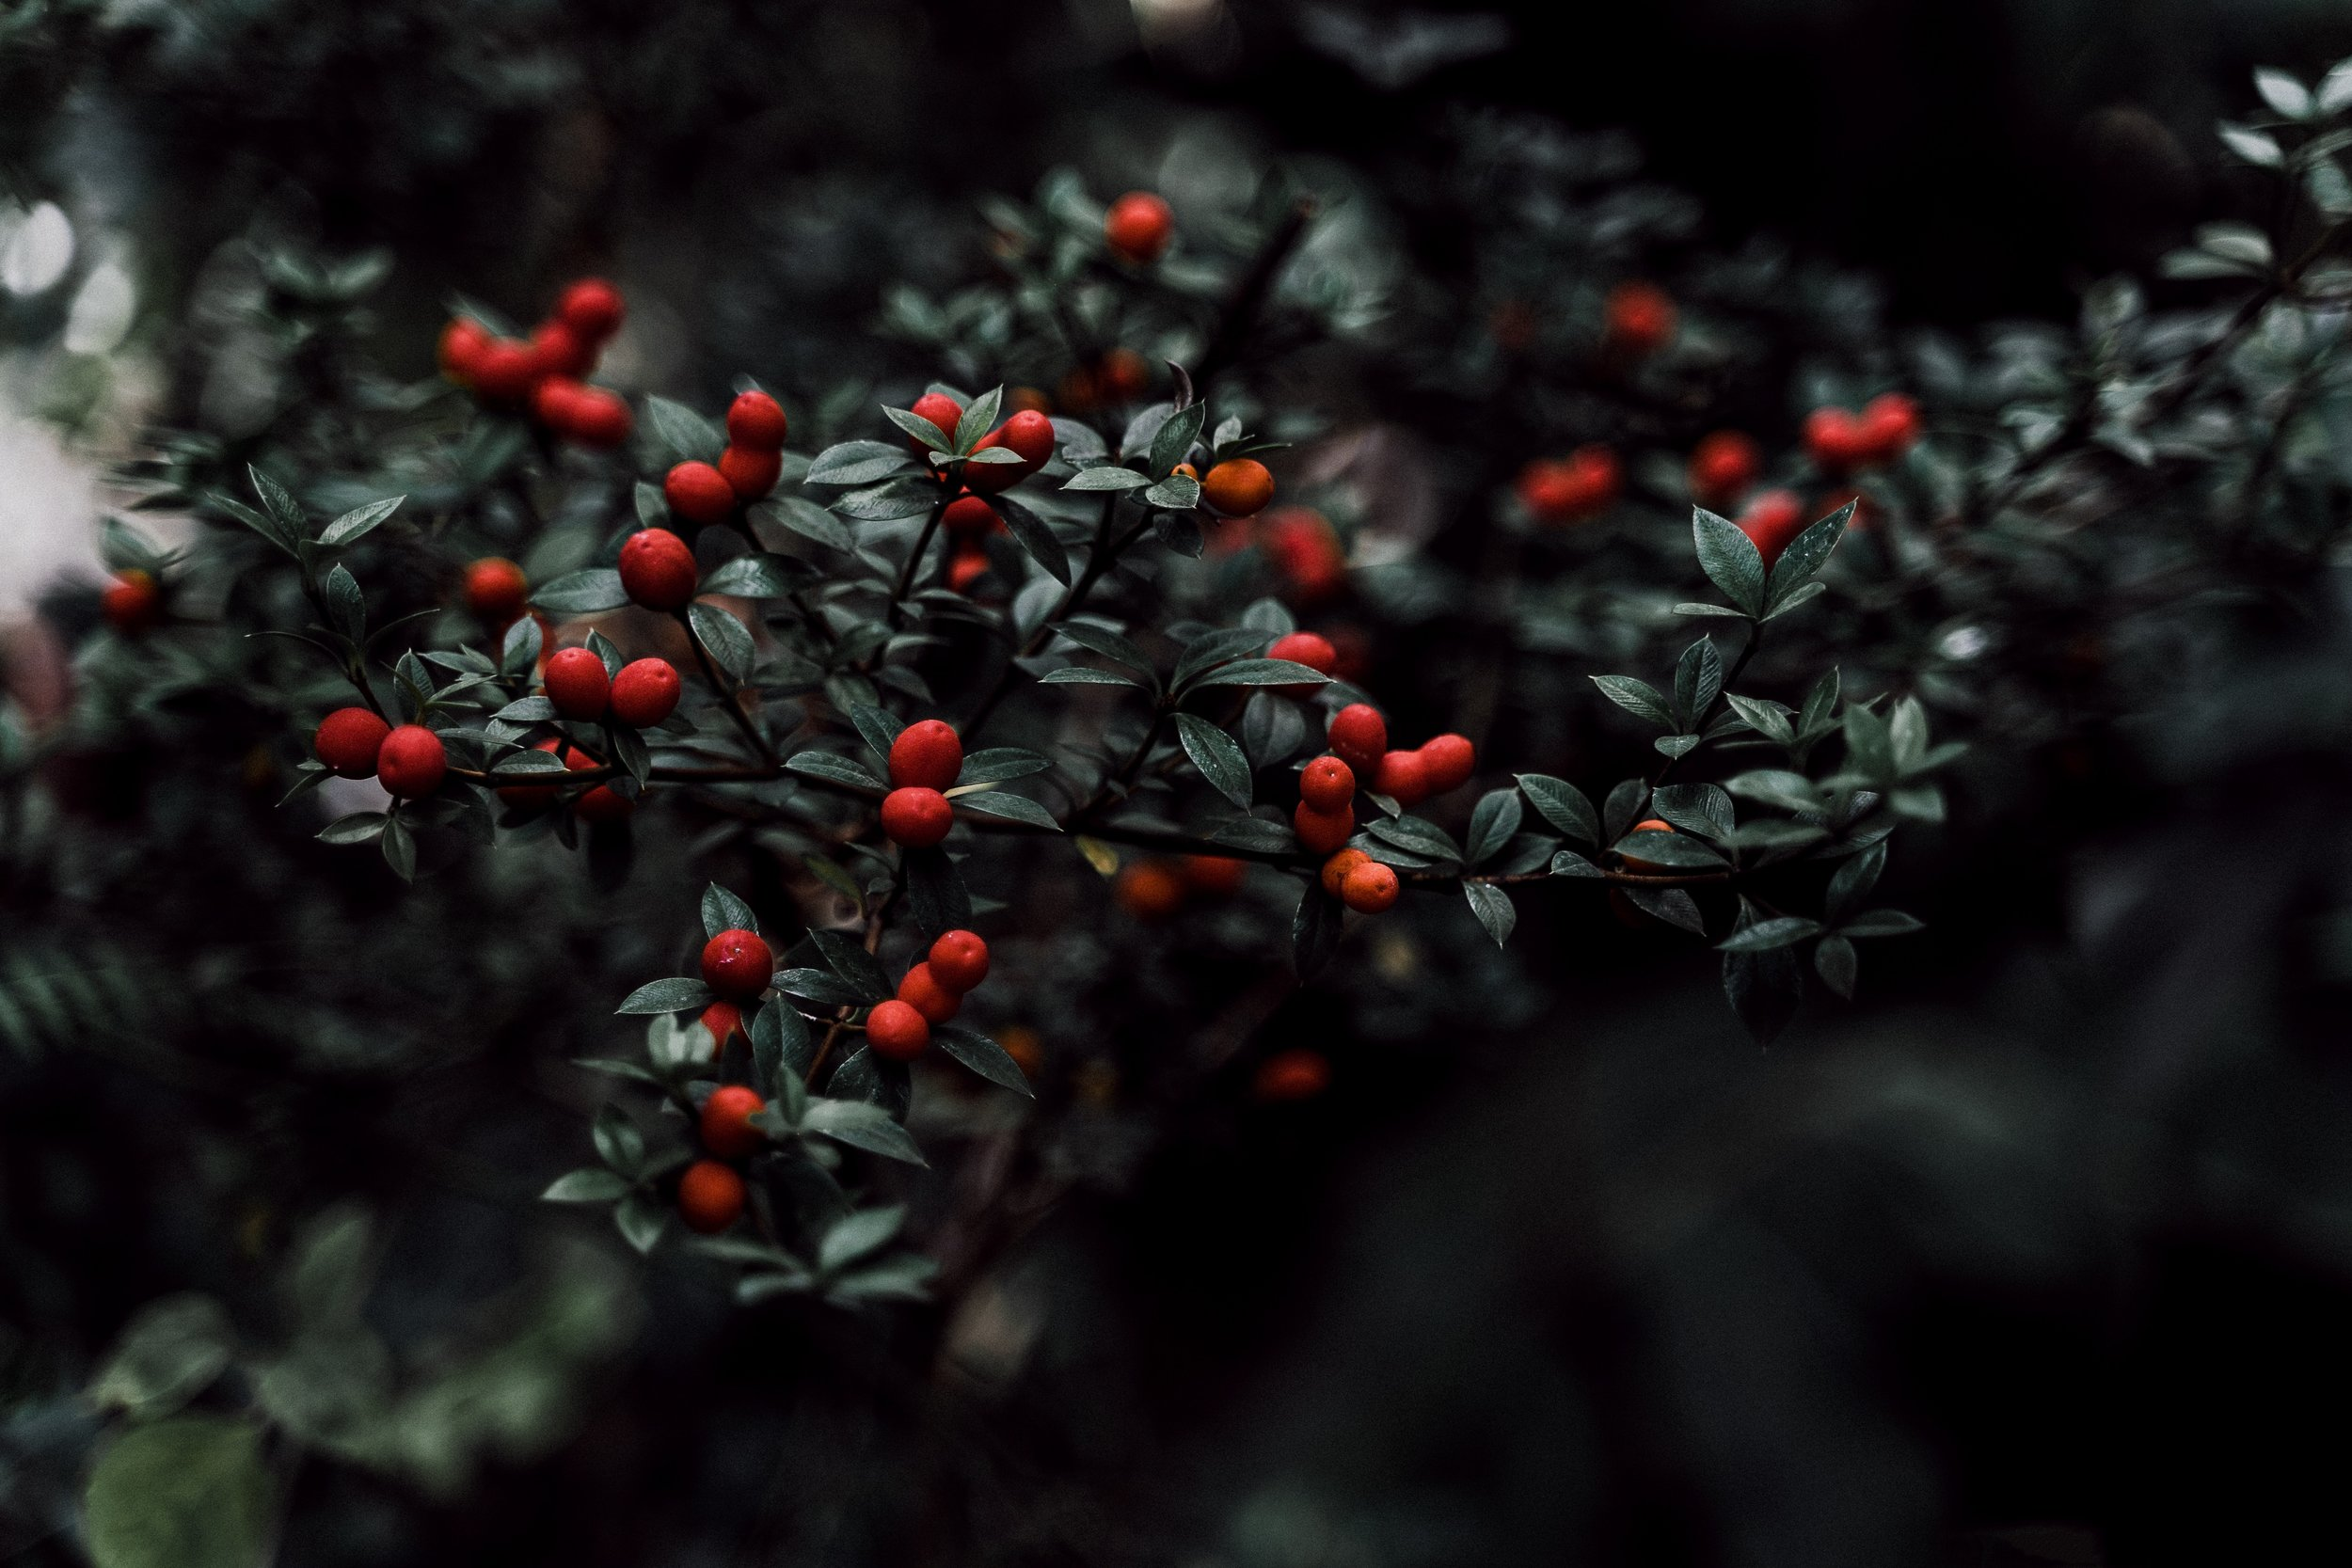 berries-blur-branch-2873472.jpg